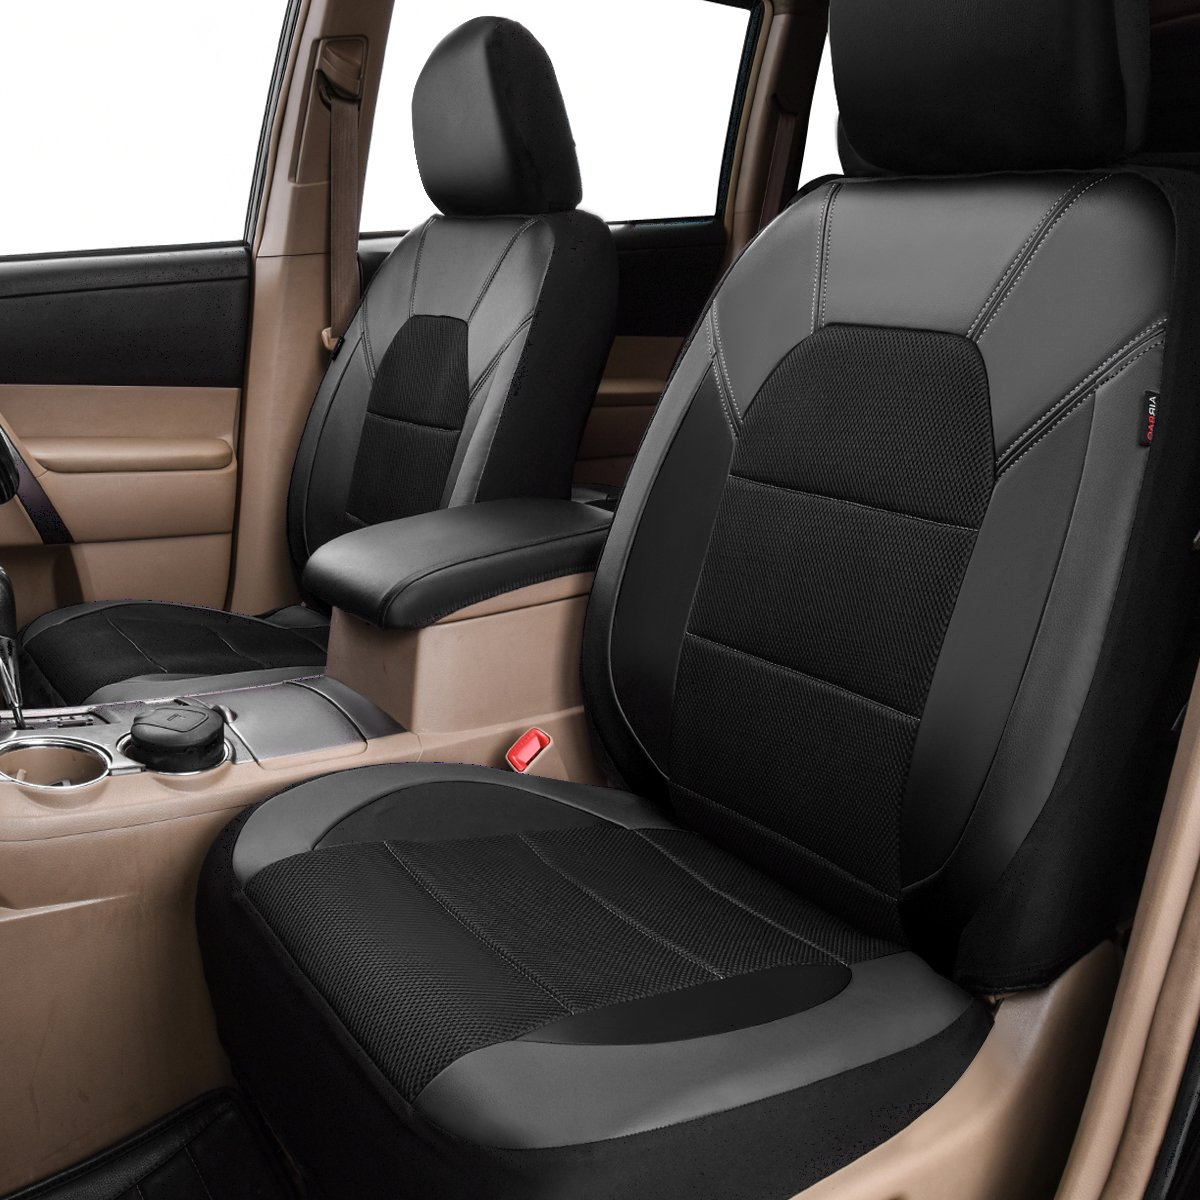 11PC, Black and Grey for Sedans Trunkcs,Suvs CAR PASS Leather and Mesh Universal Car Seat Covers,Airbag Compatible